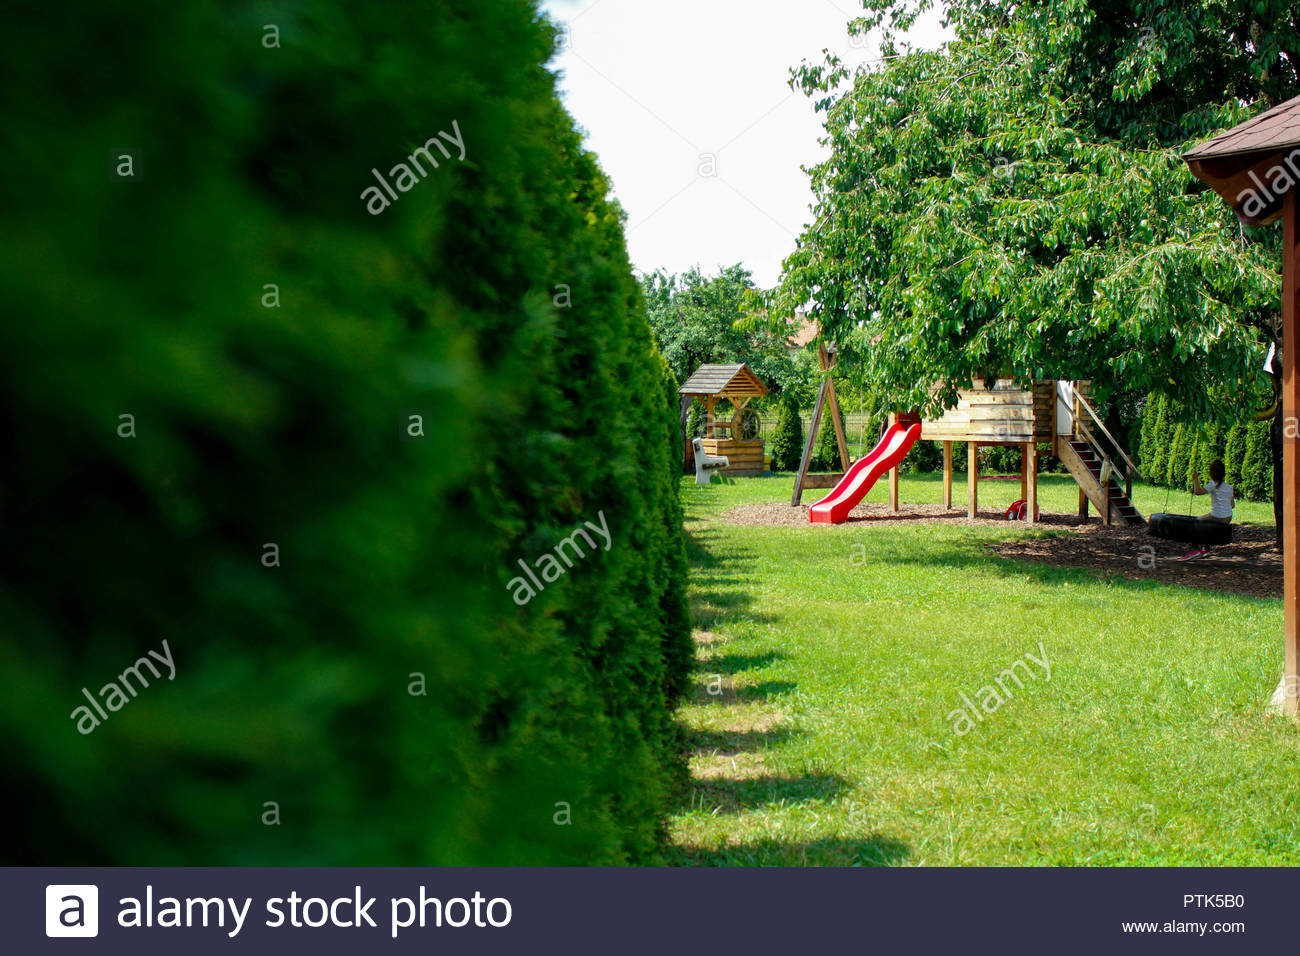 Playground in backyard,Backyard Play Structure - Stock Image - Backyard Play Area Stock Photos & Backyard Play Area Stock Images